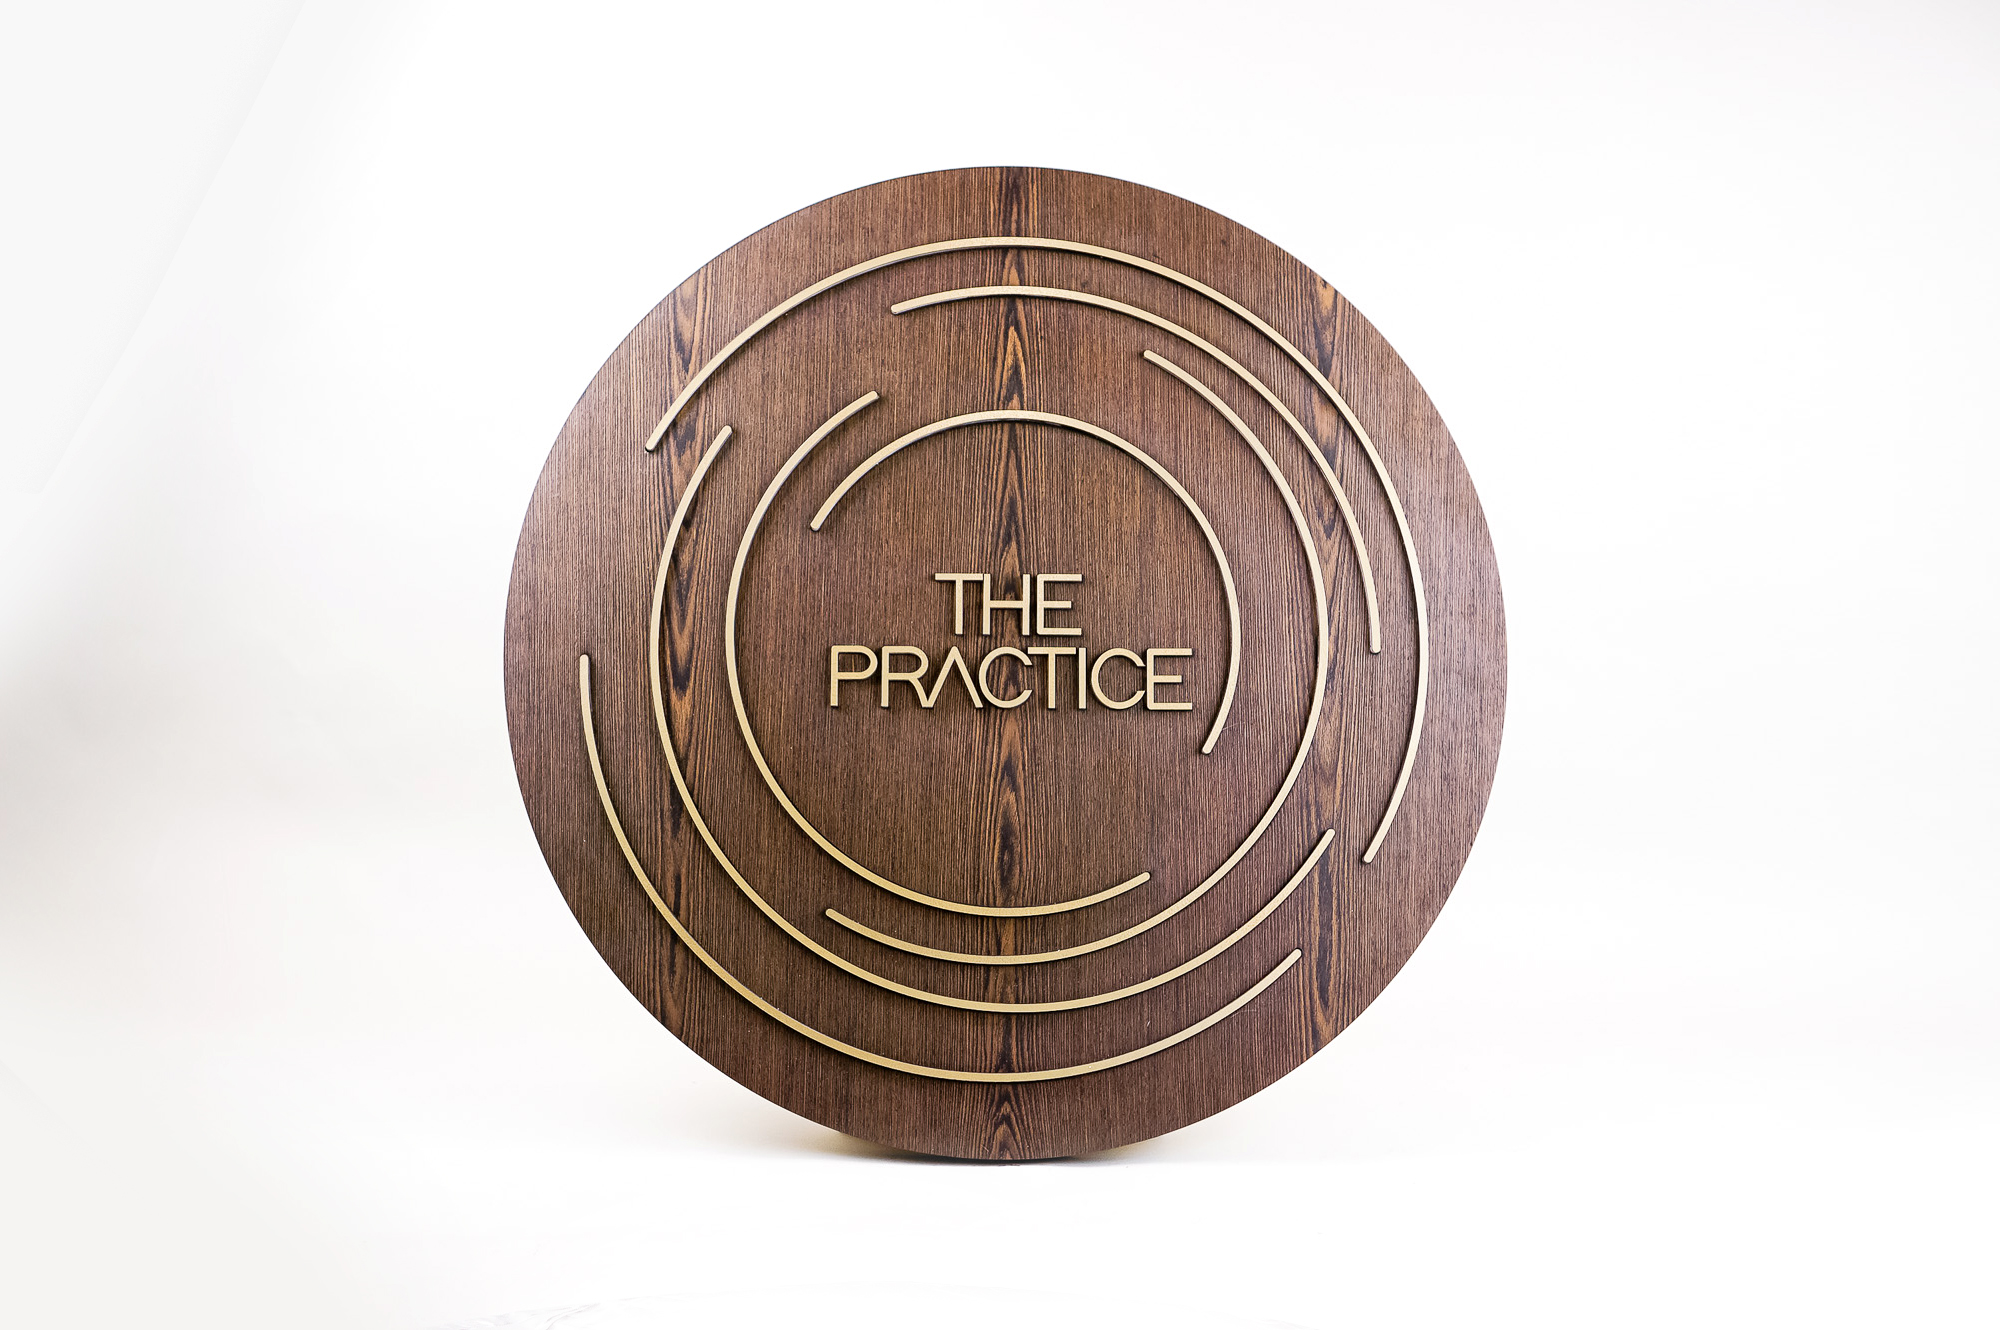 Illuminated dark wood and brass sign for The Practice, a yoga studio at Newtown Athletic Club, a premiere family fitness and wellness center serving residents of Newtown, PA